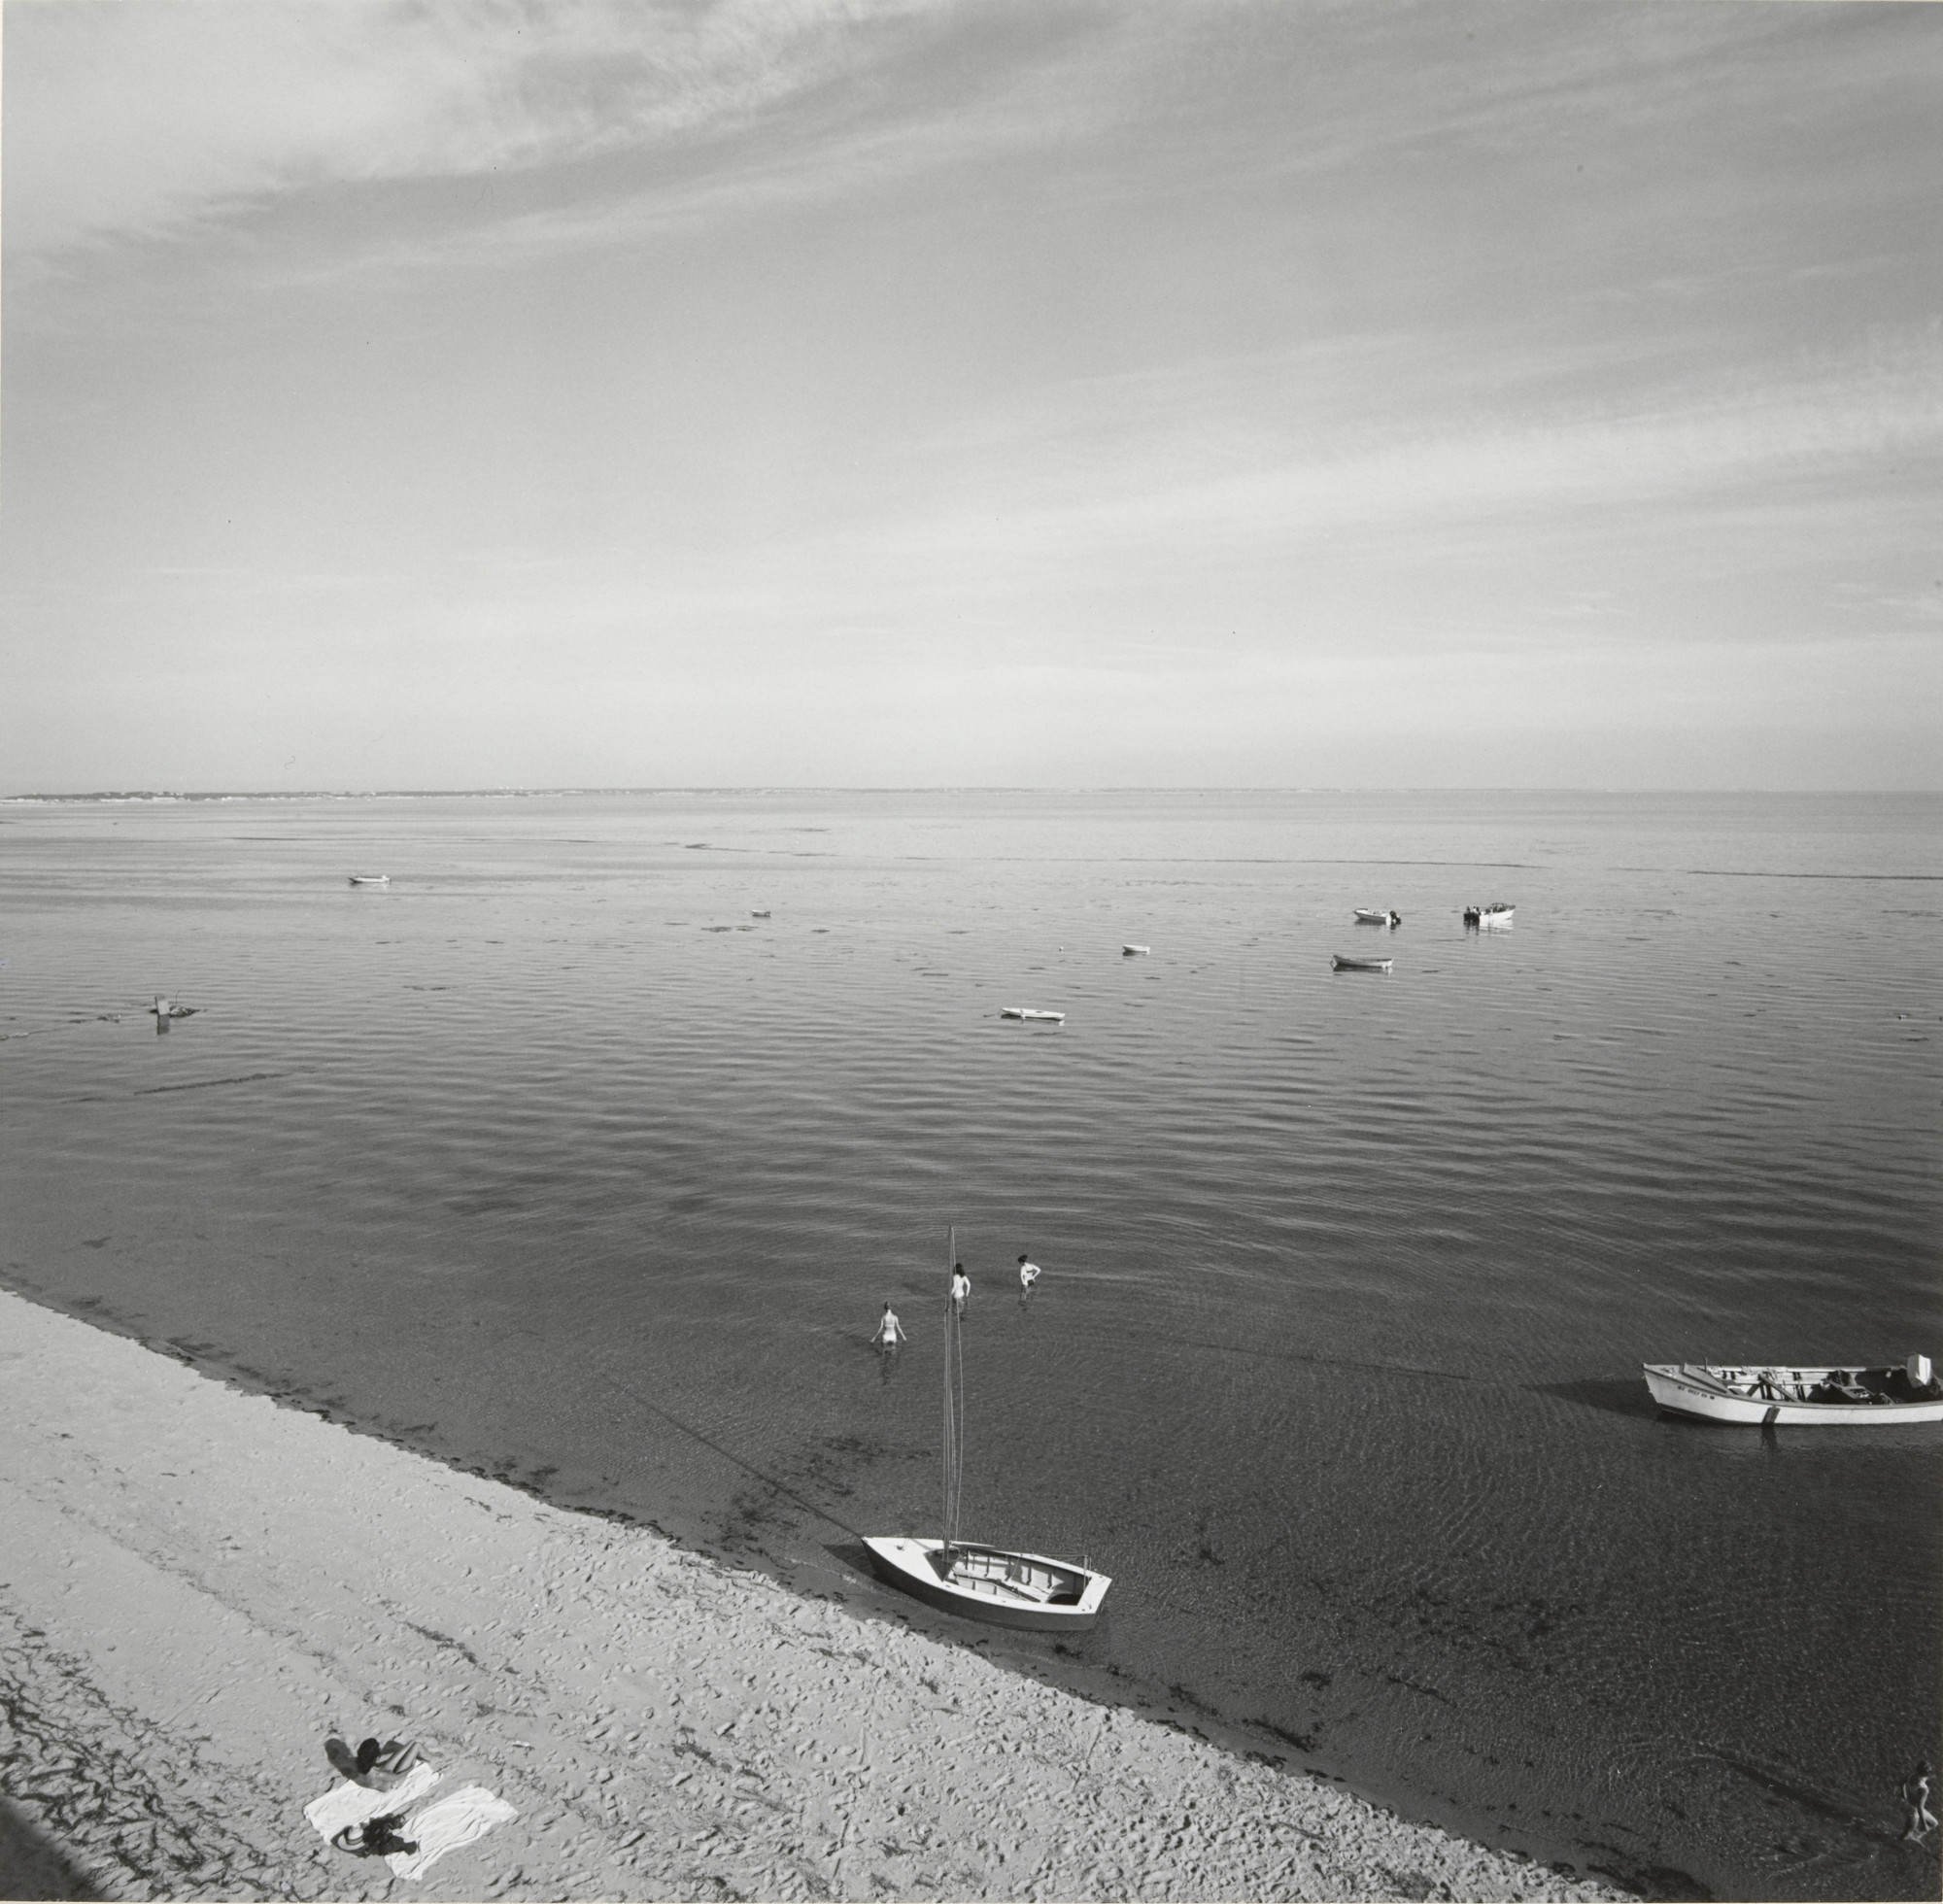 Harry Callahan. Cape Cod. 1972